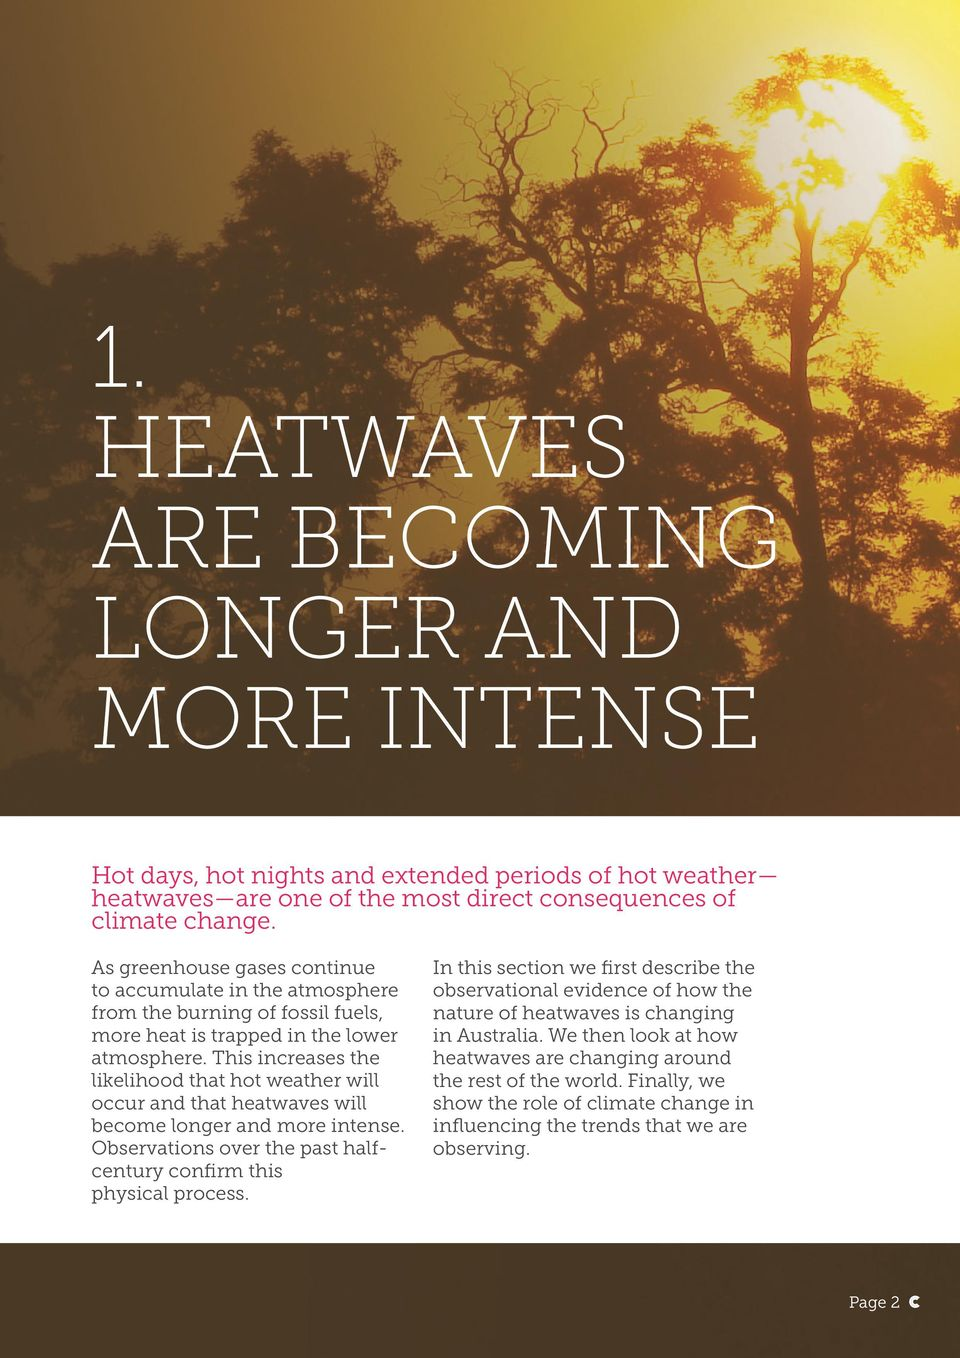 This increases the likelihood that hot weather will occur and that heatwaves will become longer and more intense. Observations over the past halfcentury confirm this physical process.